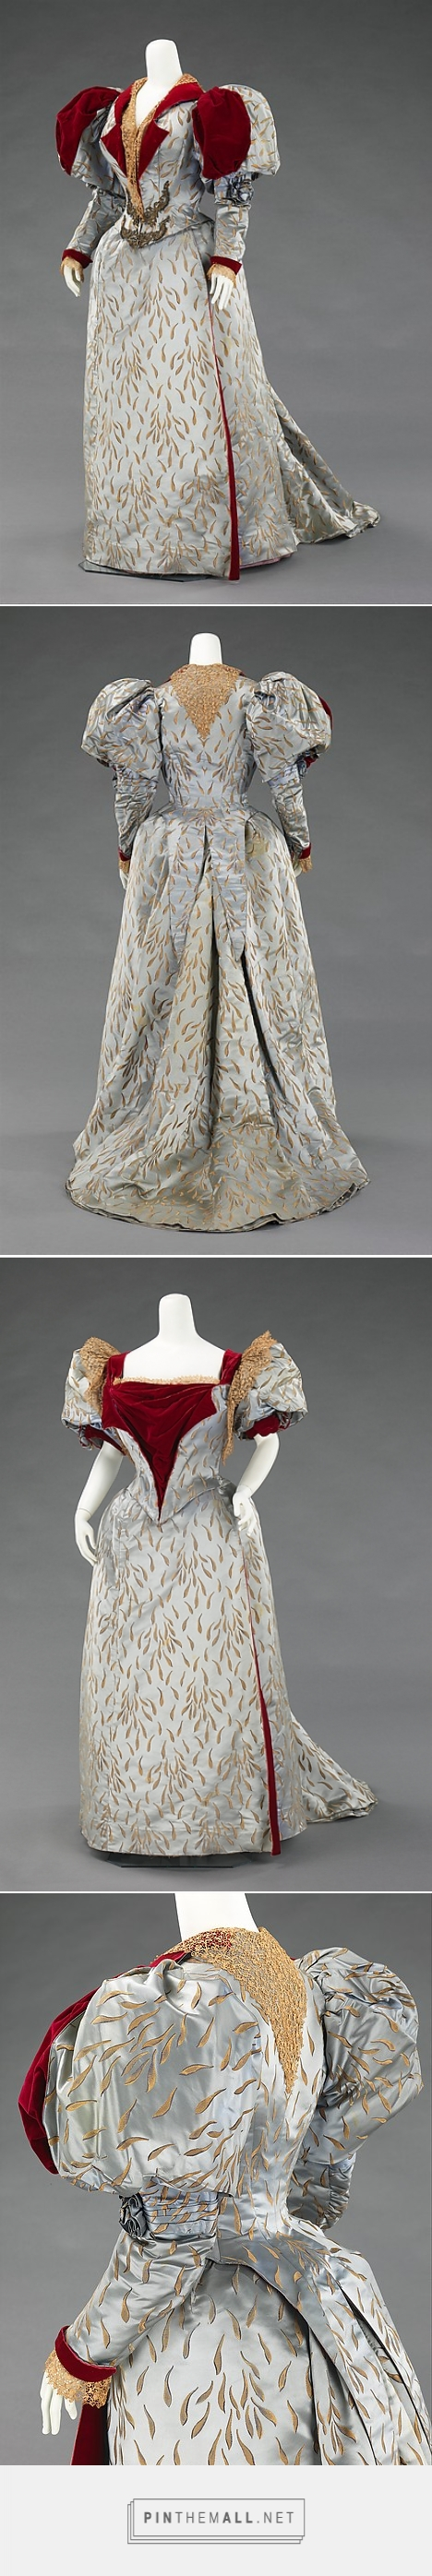 Evening ensemble by House of Worth 1893 French | The Metropolitan Museum of Art